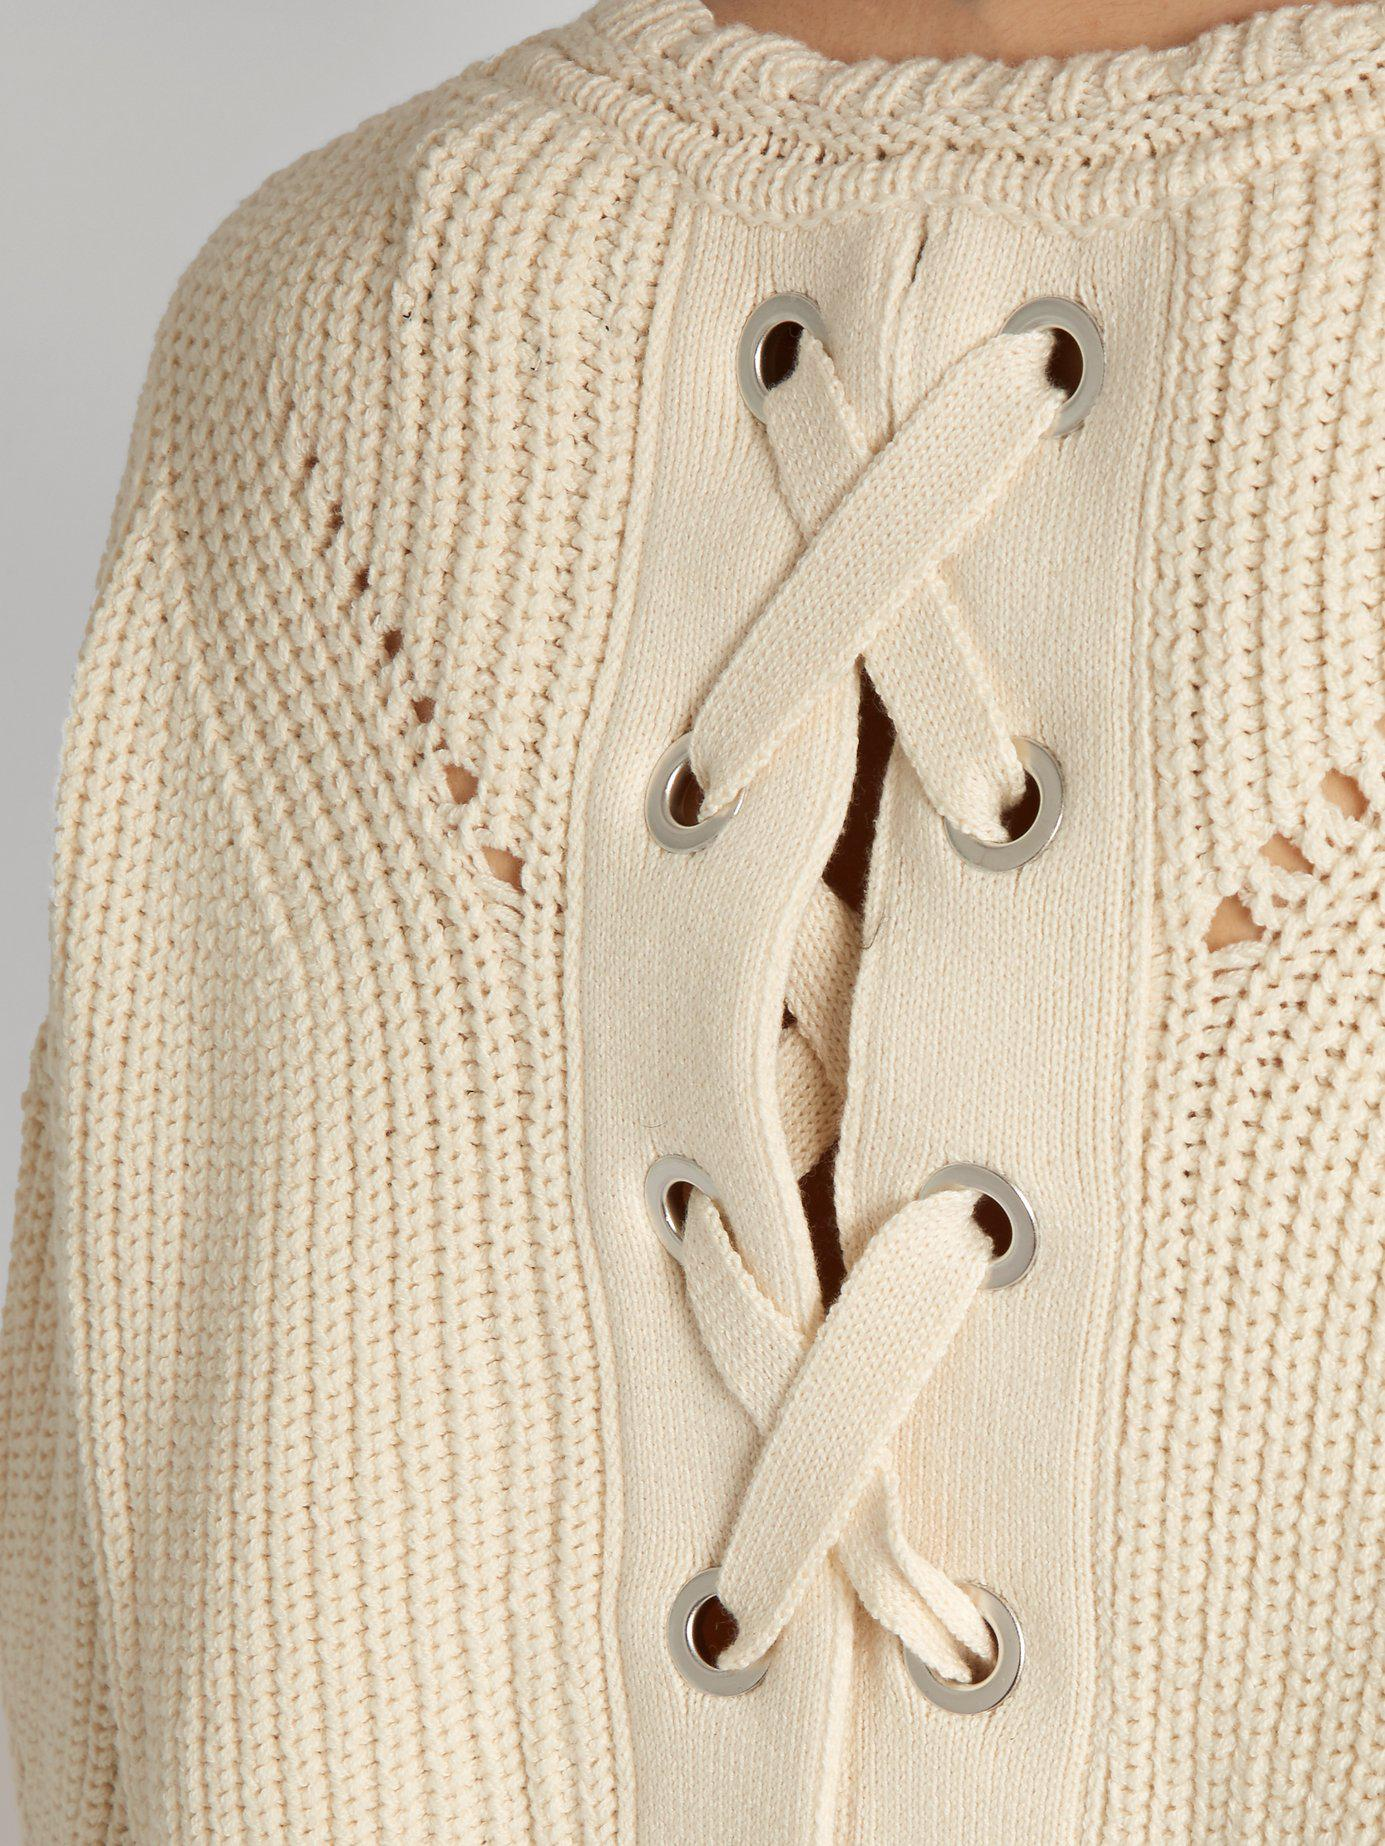 Lyst - Isabel Marant Grifin Lace-up Back Cotton-blend Sweater in Natural dfa161b1f